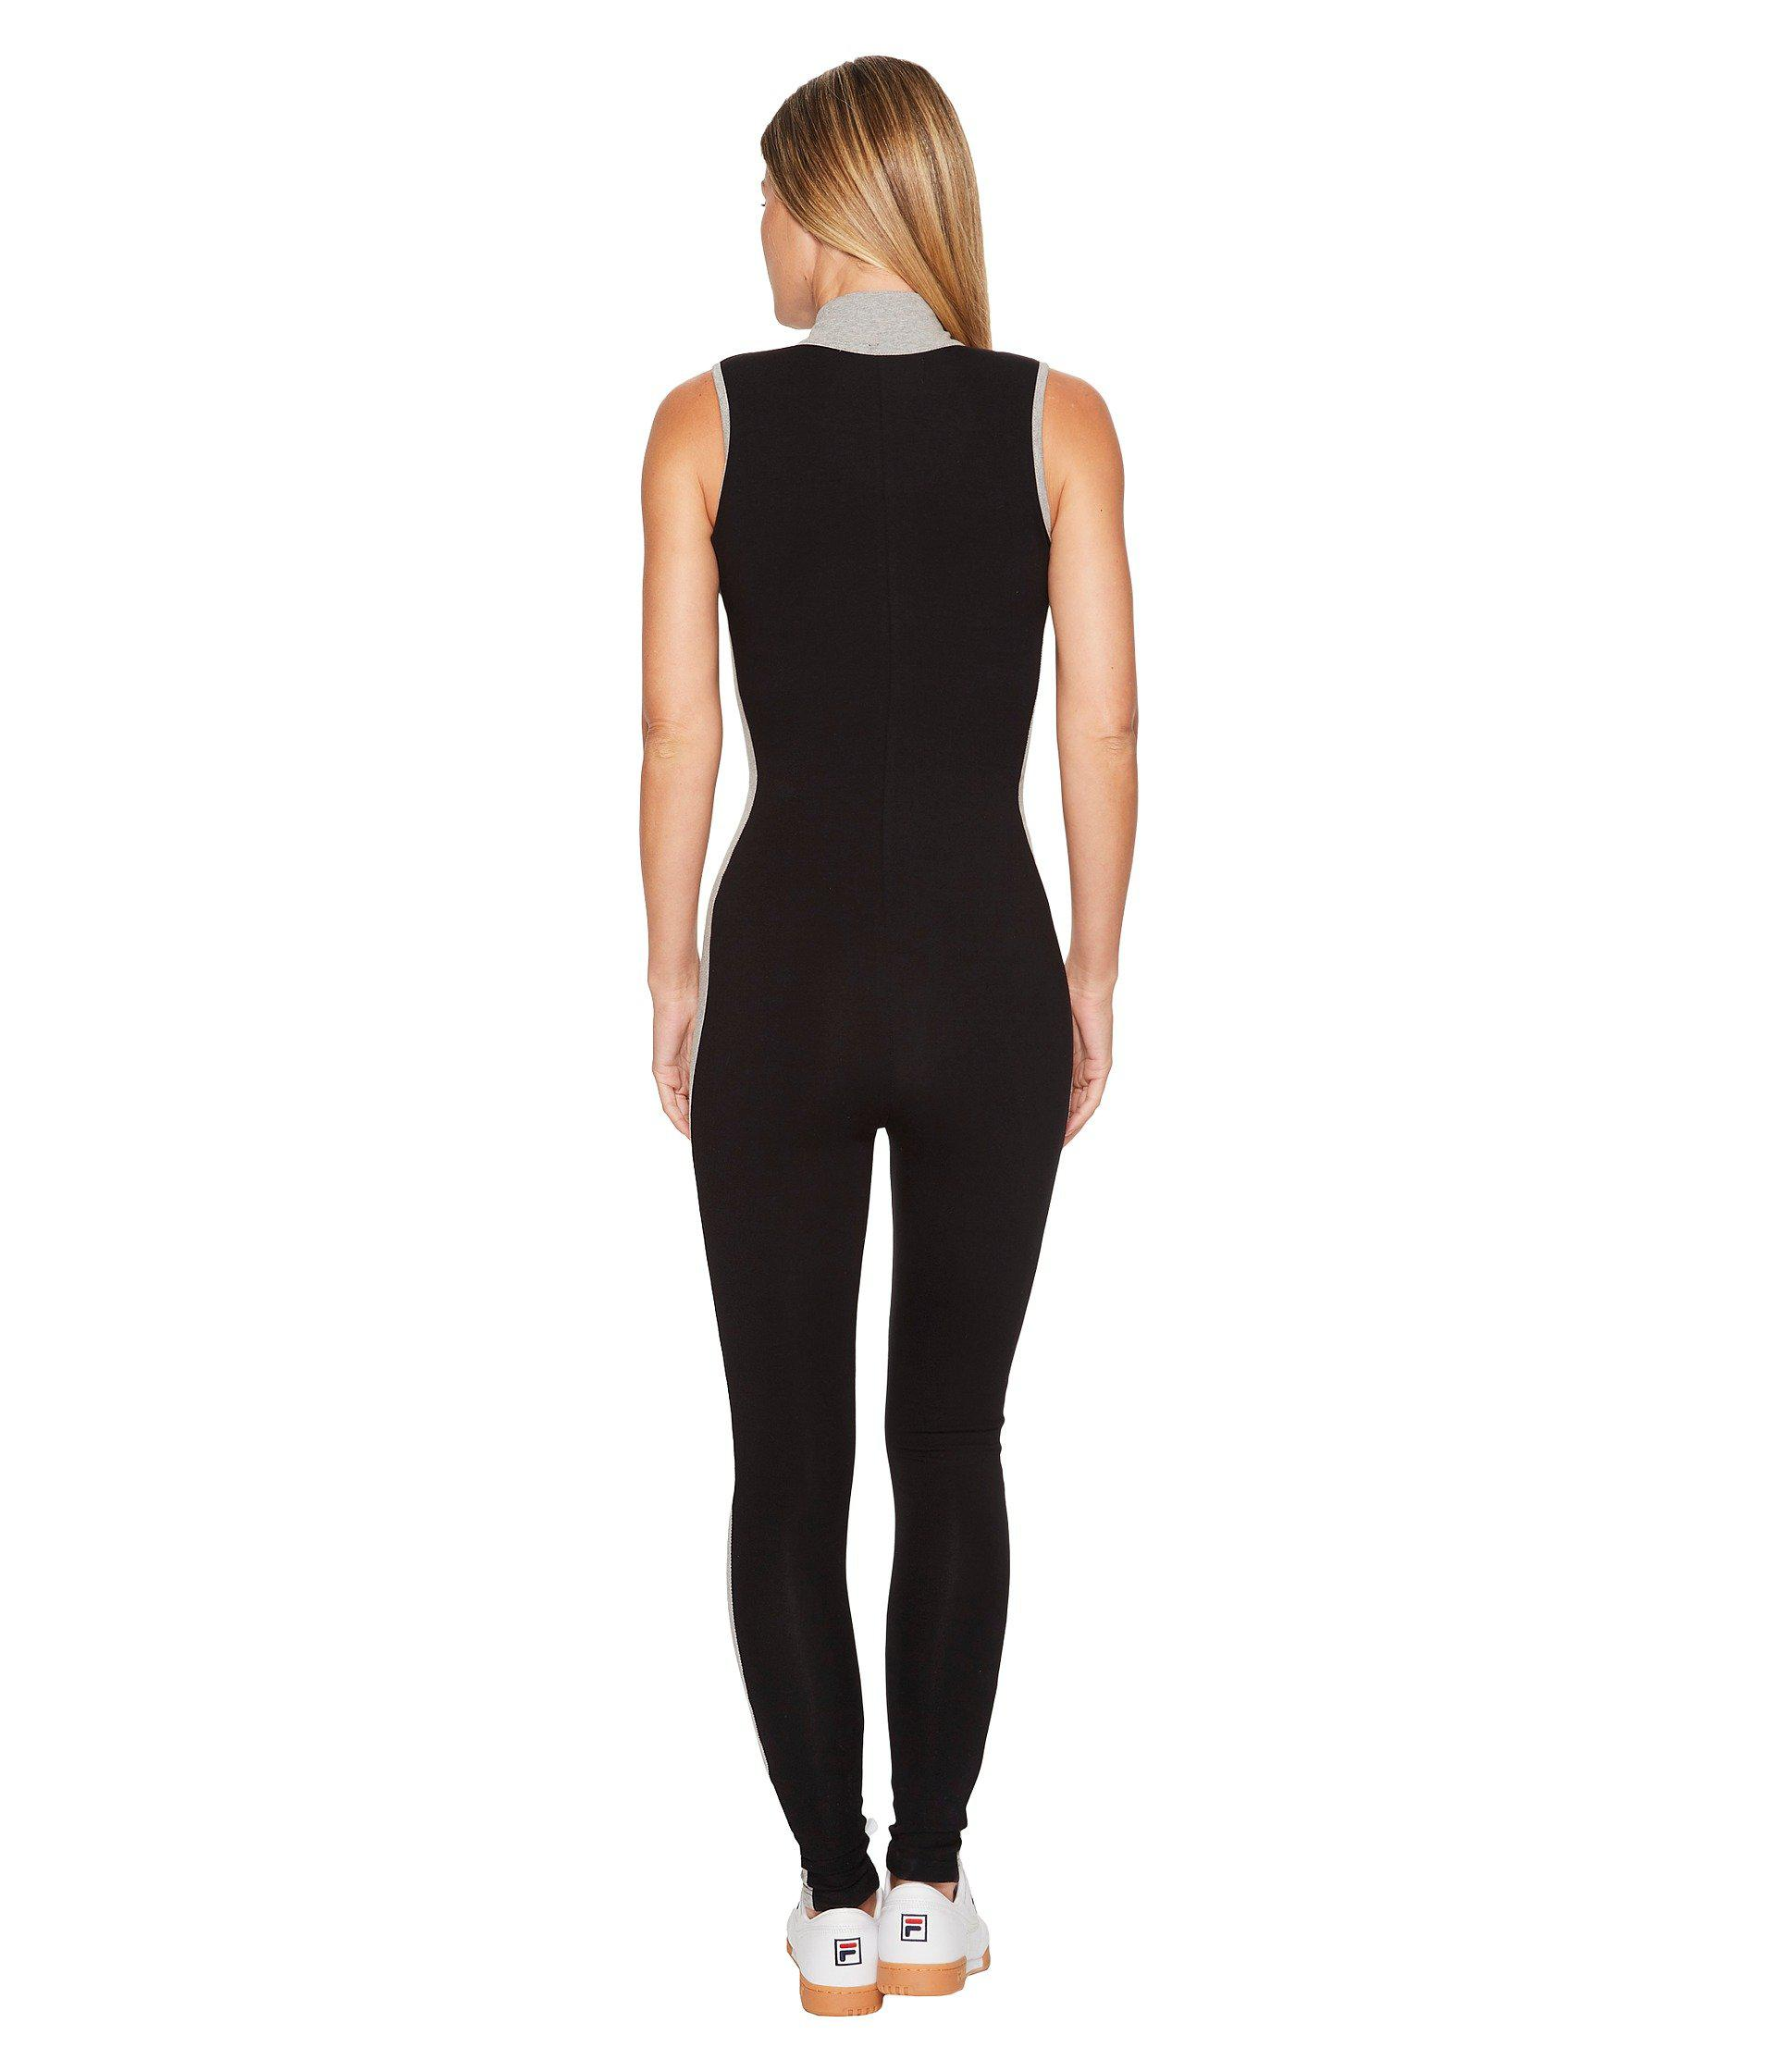 38c555b18a4 Lyst - Fila Roseann Unitard (black gray Heather white) Women s ...